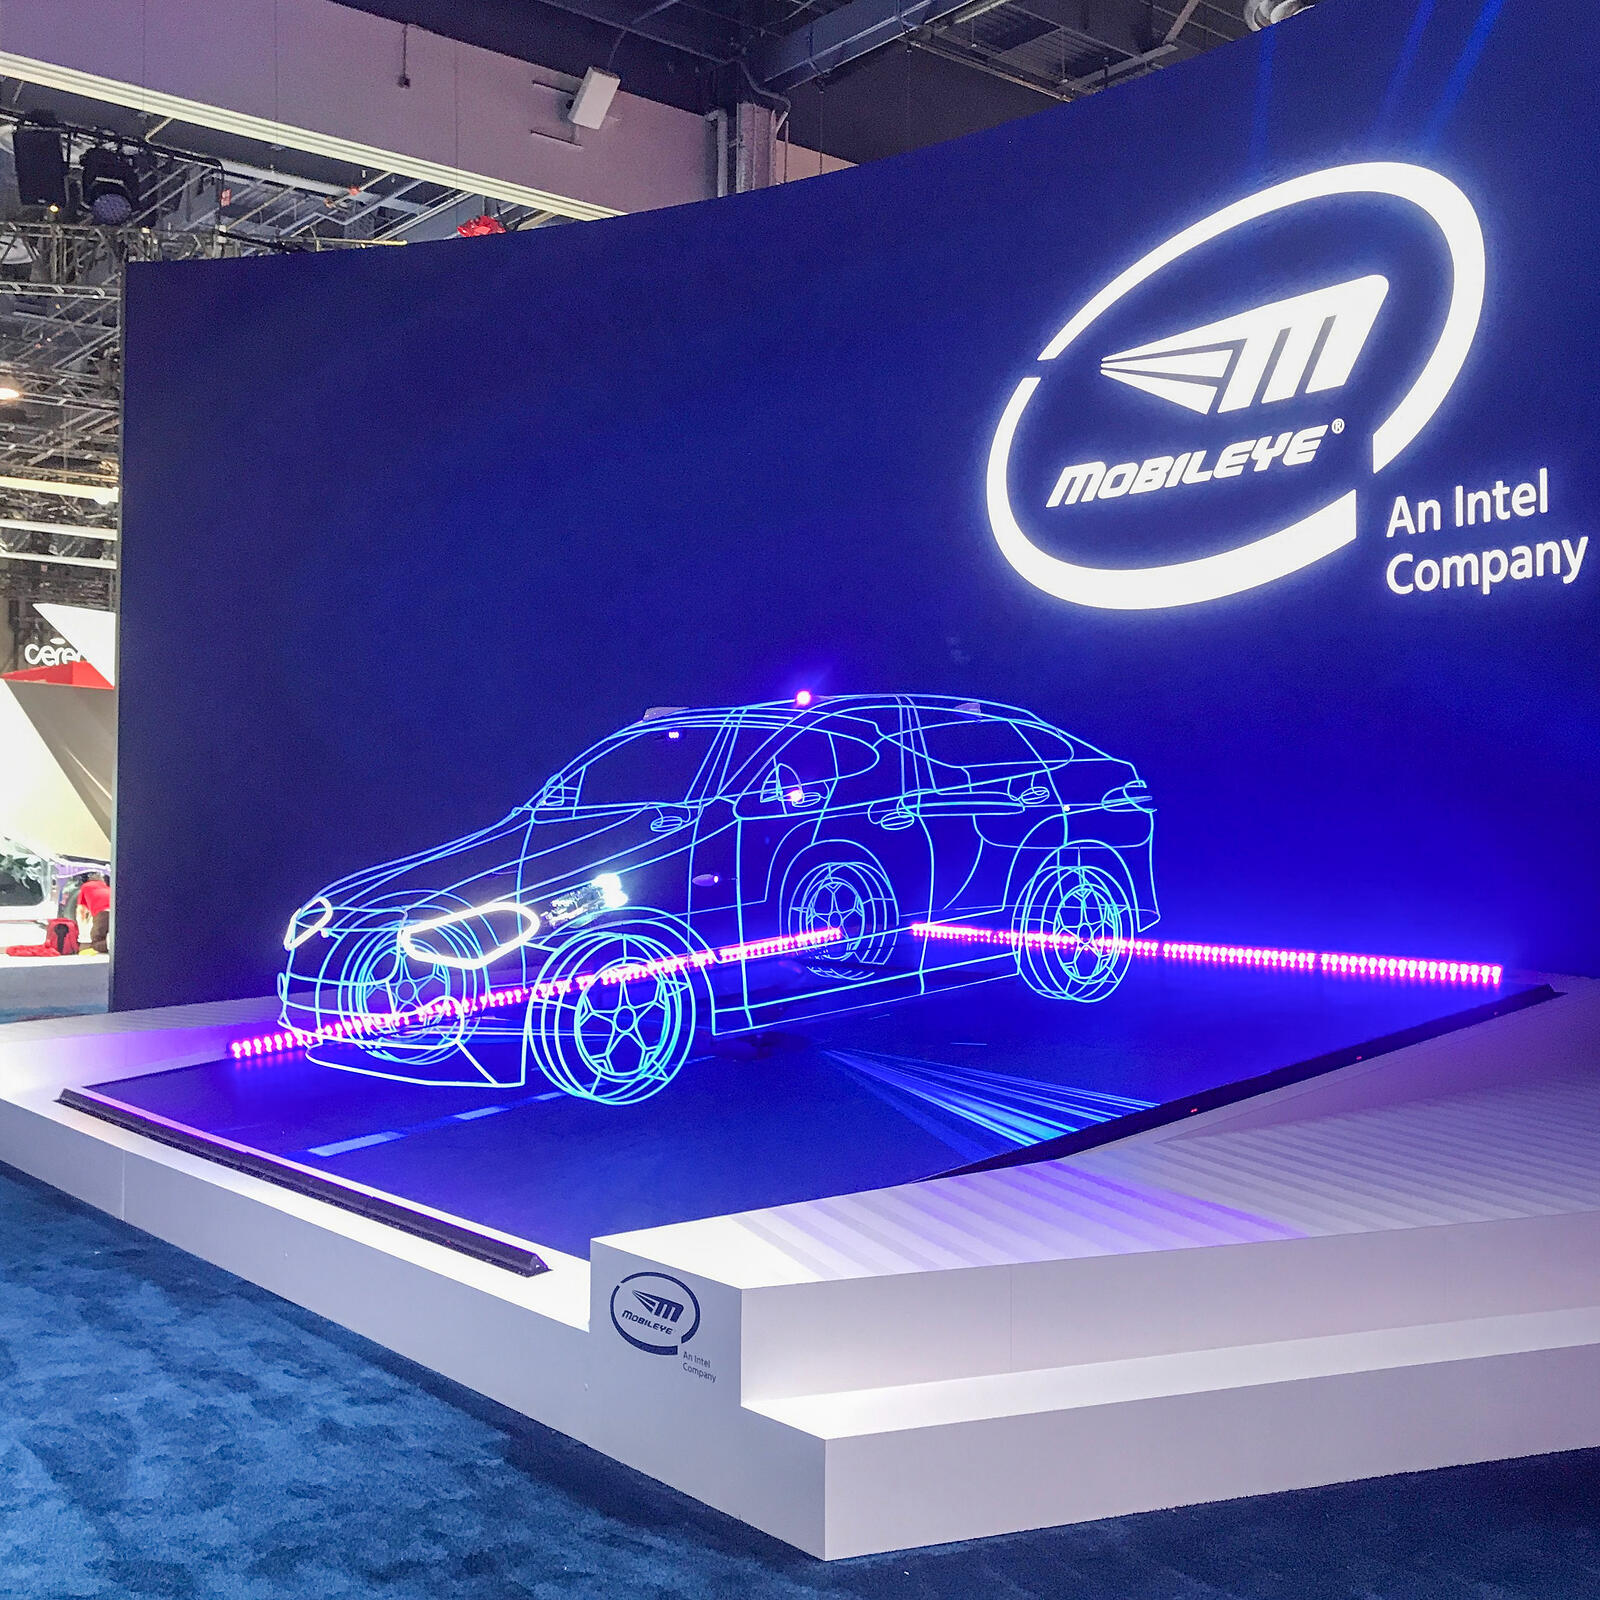 mobileye showcases autonomous LED vehicle at CES 2020